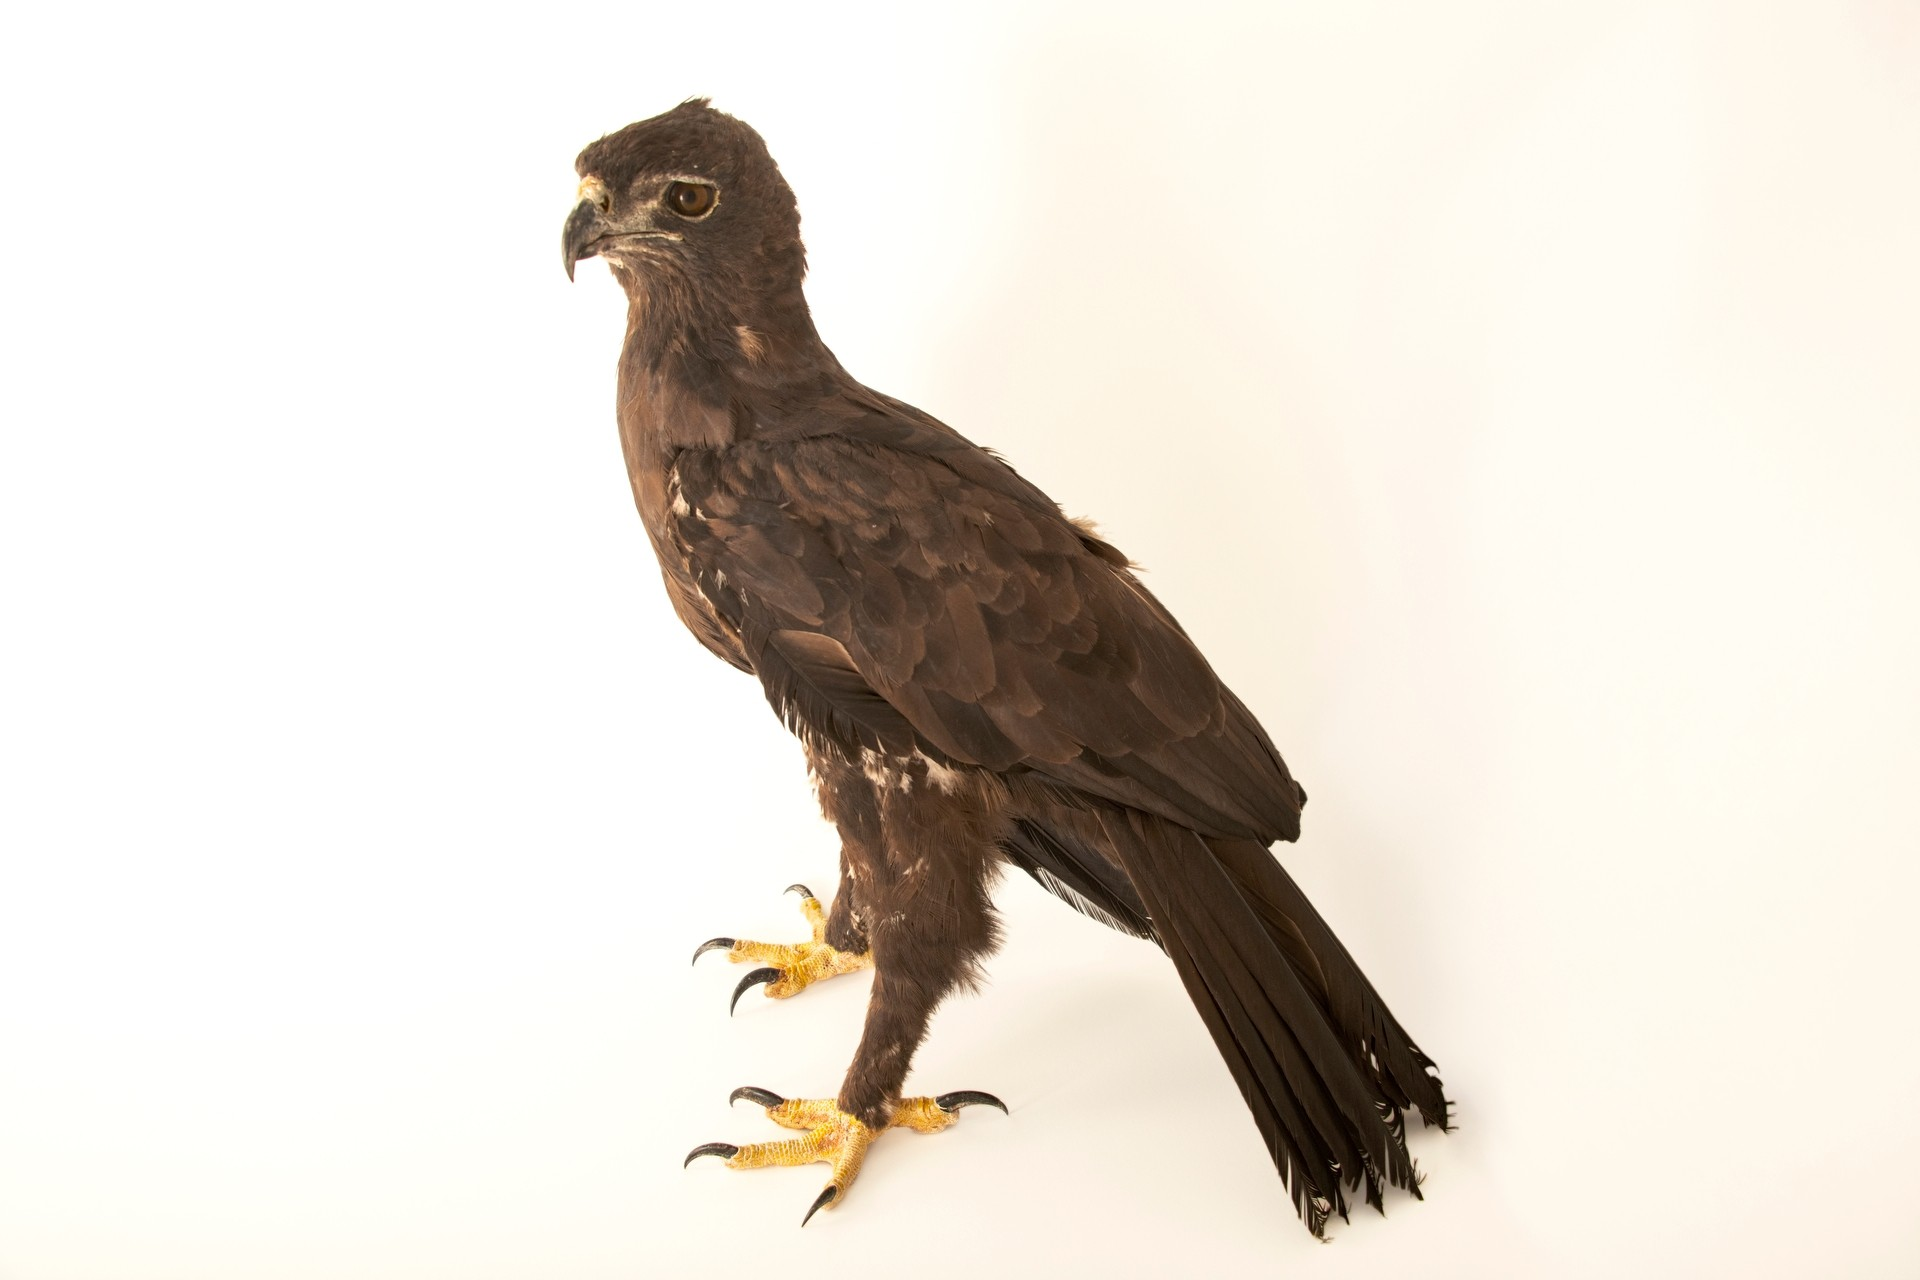 Photo: A black eagle (Ictinaetus malalensis malalensis) at a private collection in Jakarta, Indonesia.